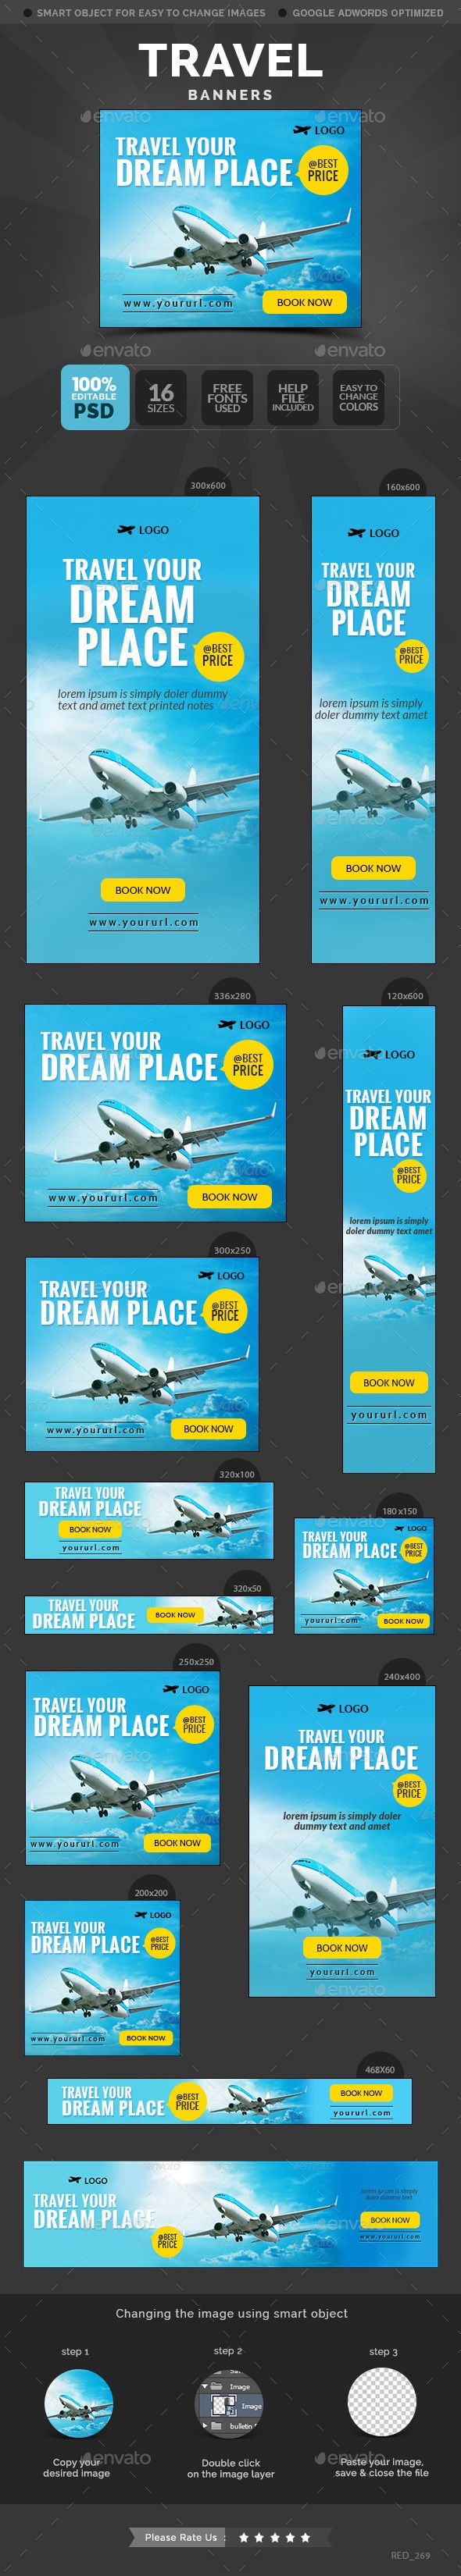 Travel Banners Template #design #banners #web Download: http://graphicriver.net/item/travel-banners/11807660?ref=ksioks